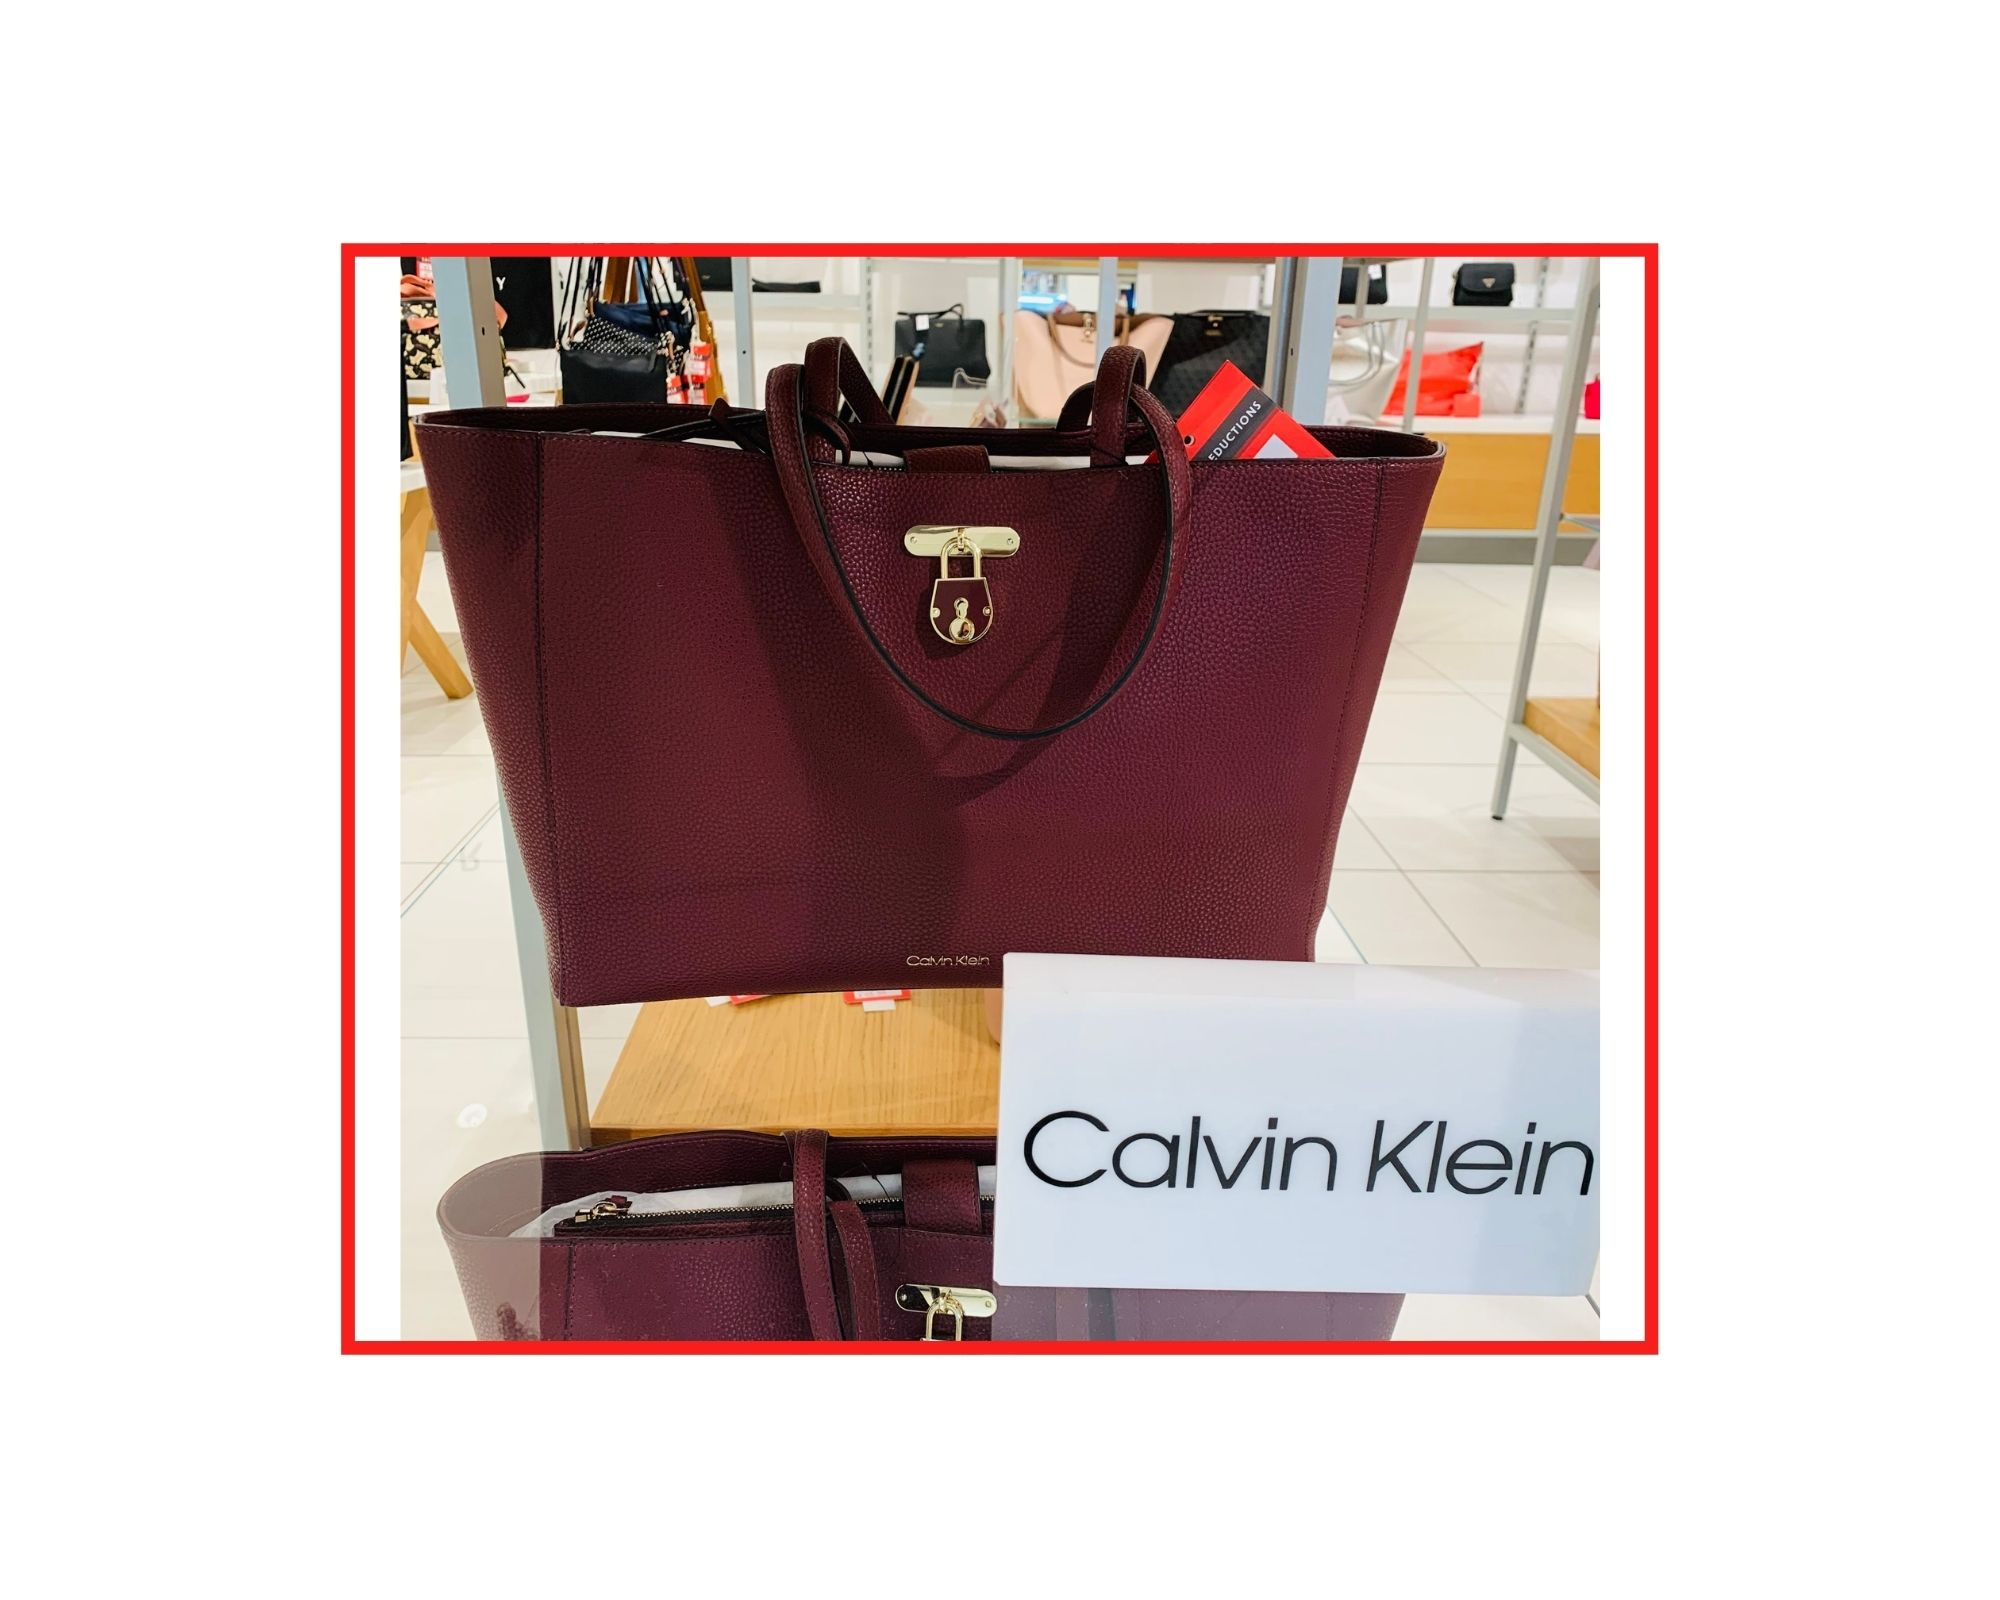 Clavin Klein  Shopper With Detachable Laptop Sleeve  UK £145 | JSY £130.50 | NOW £91.35